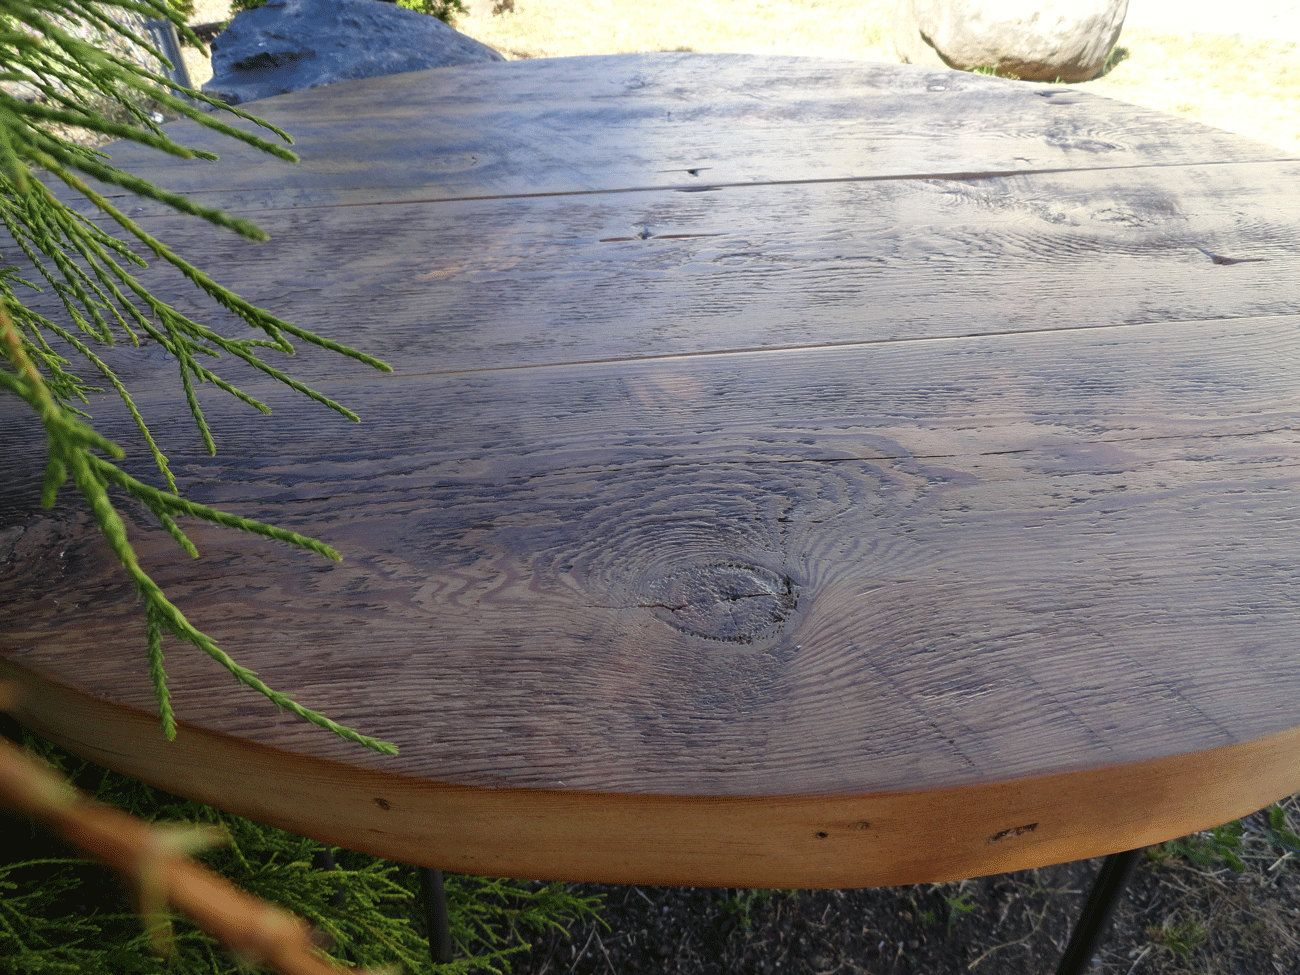 Antique Barnwood Round Dining Table 24 inches by MtHoodWoodWorks $229.00 & Antique Barnwood Round Dining Table 24 inches by MtHoodWoodWorks ...